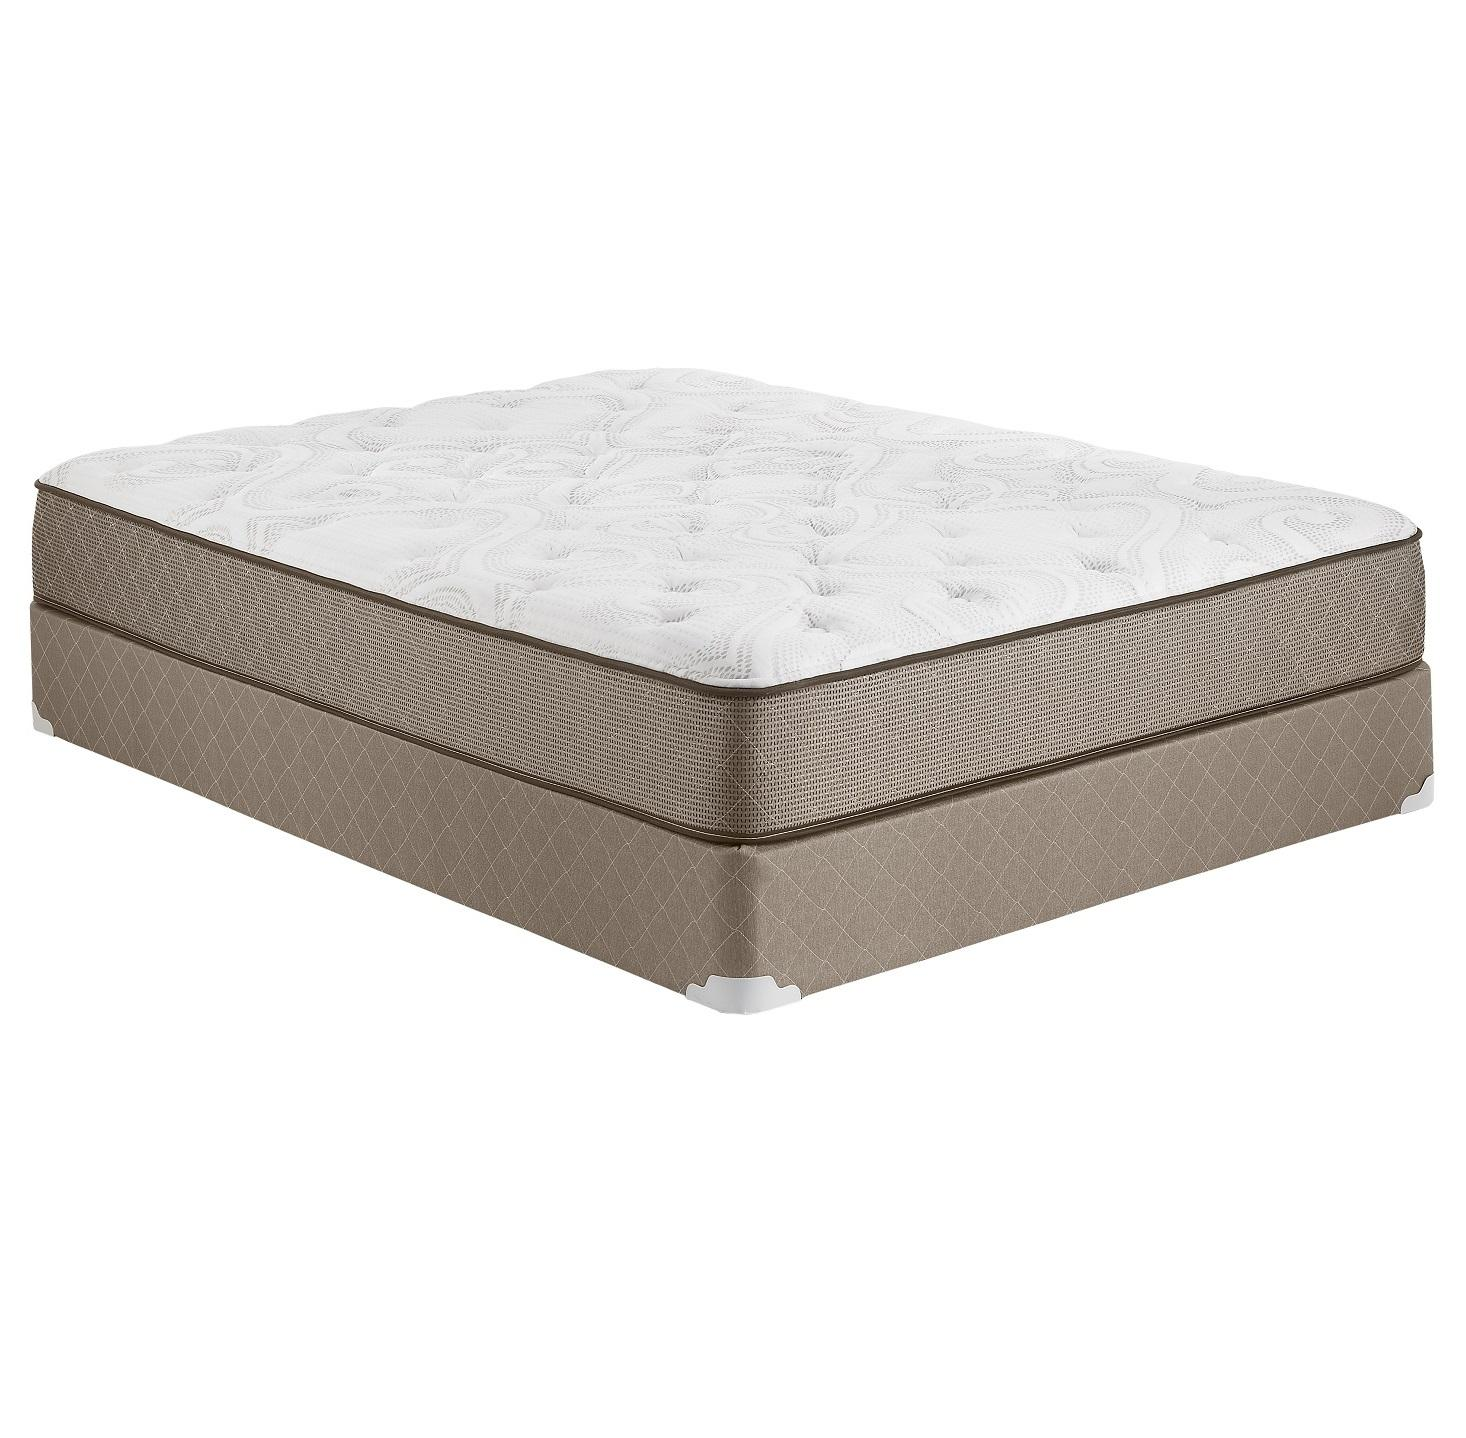 regal corp mattress sherwood national en relax